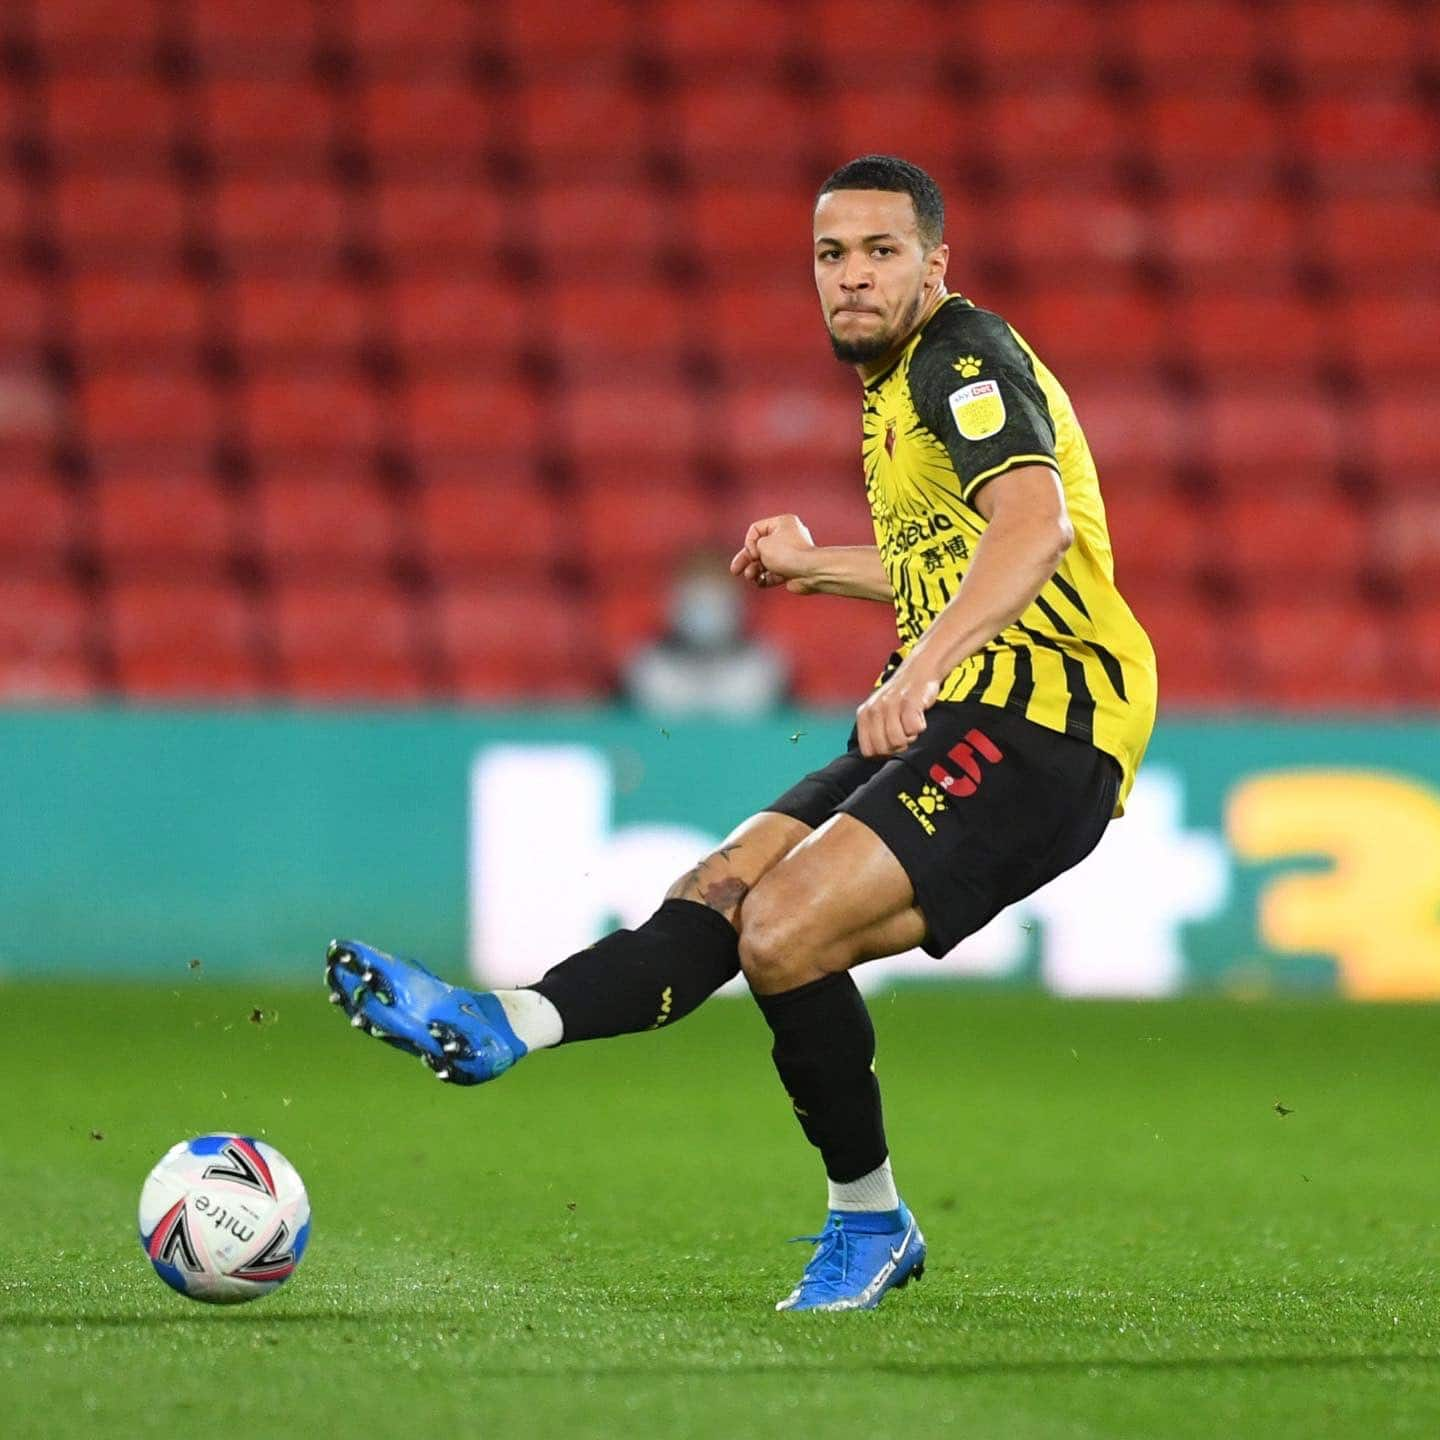 Watford Boss Munoz Allays Troost-Ekong Injury Fear